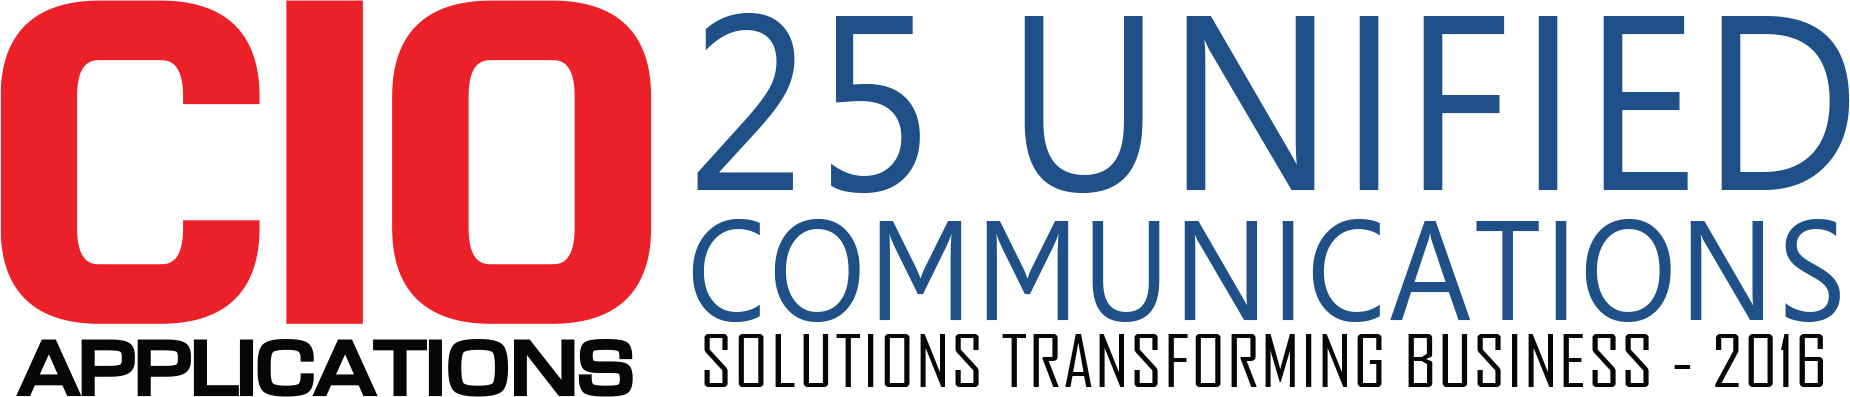 Top 25 Unified Communication Solutions Companies Transforming Business - 2016